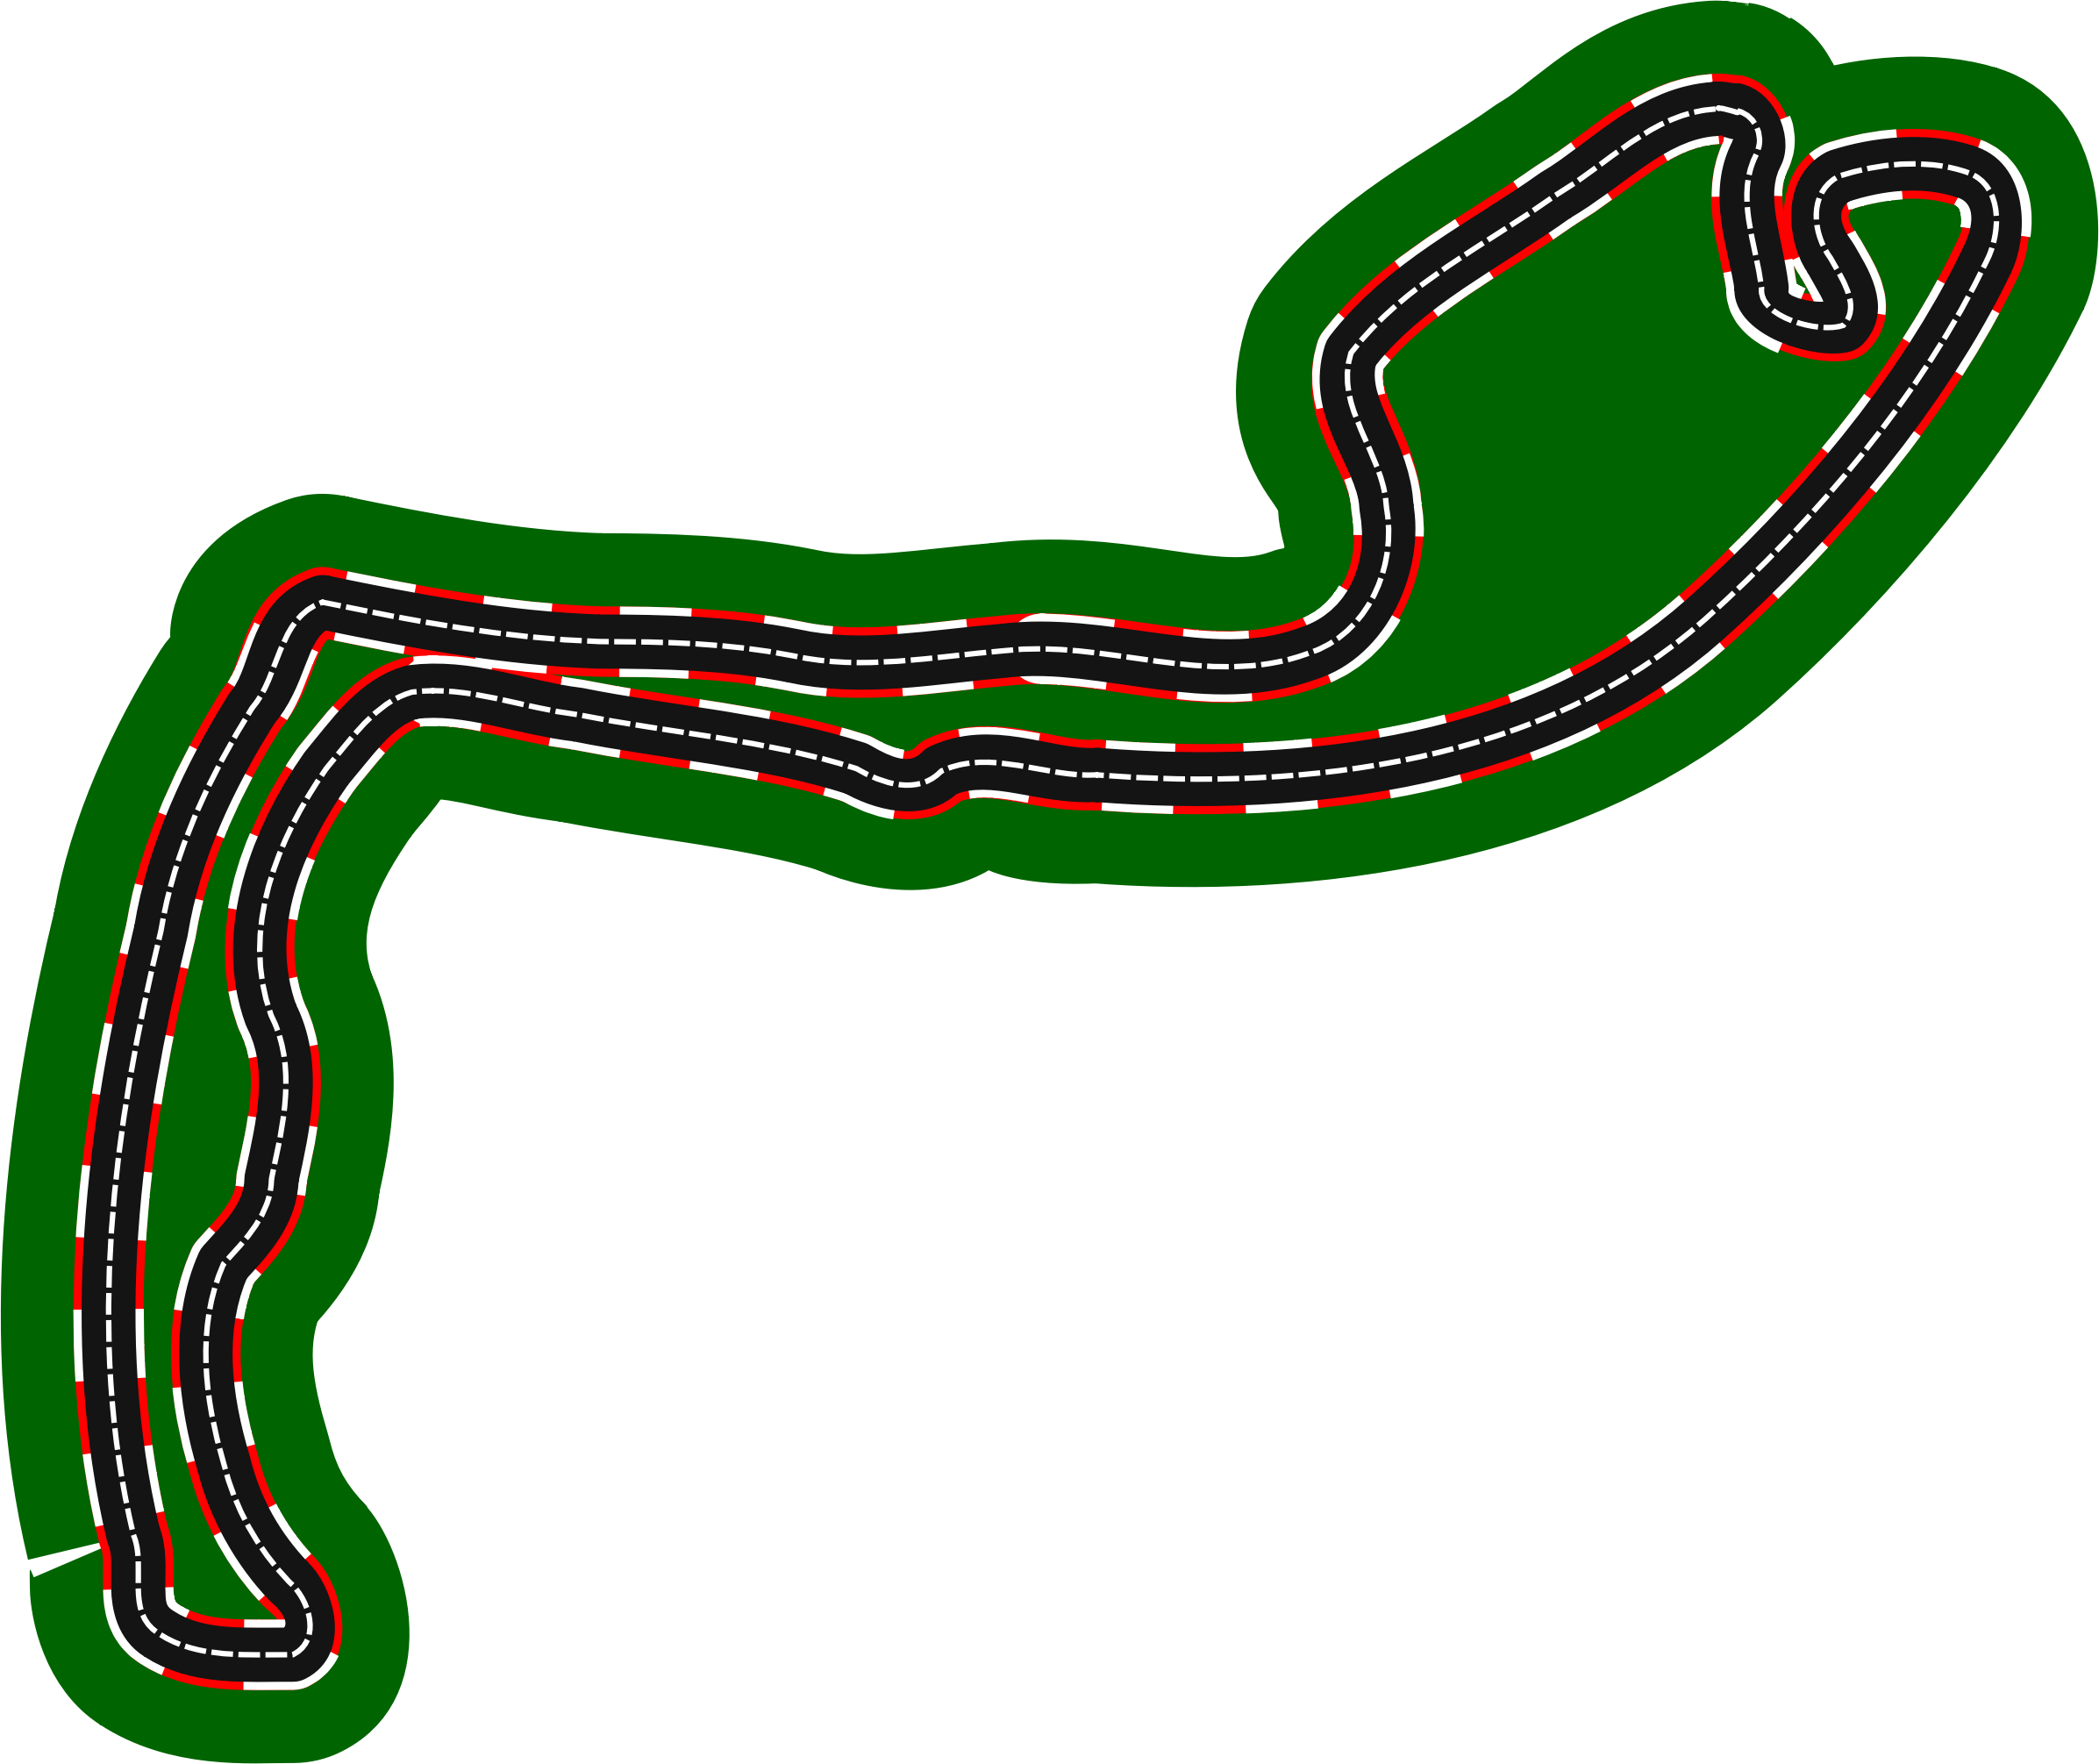 F1 circuits 2014-2018 - Circuit de Monaco (version 2) by Firkin